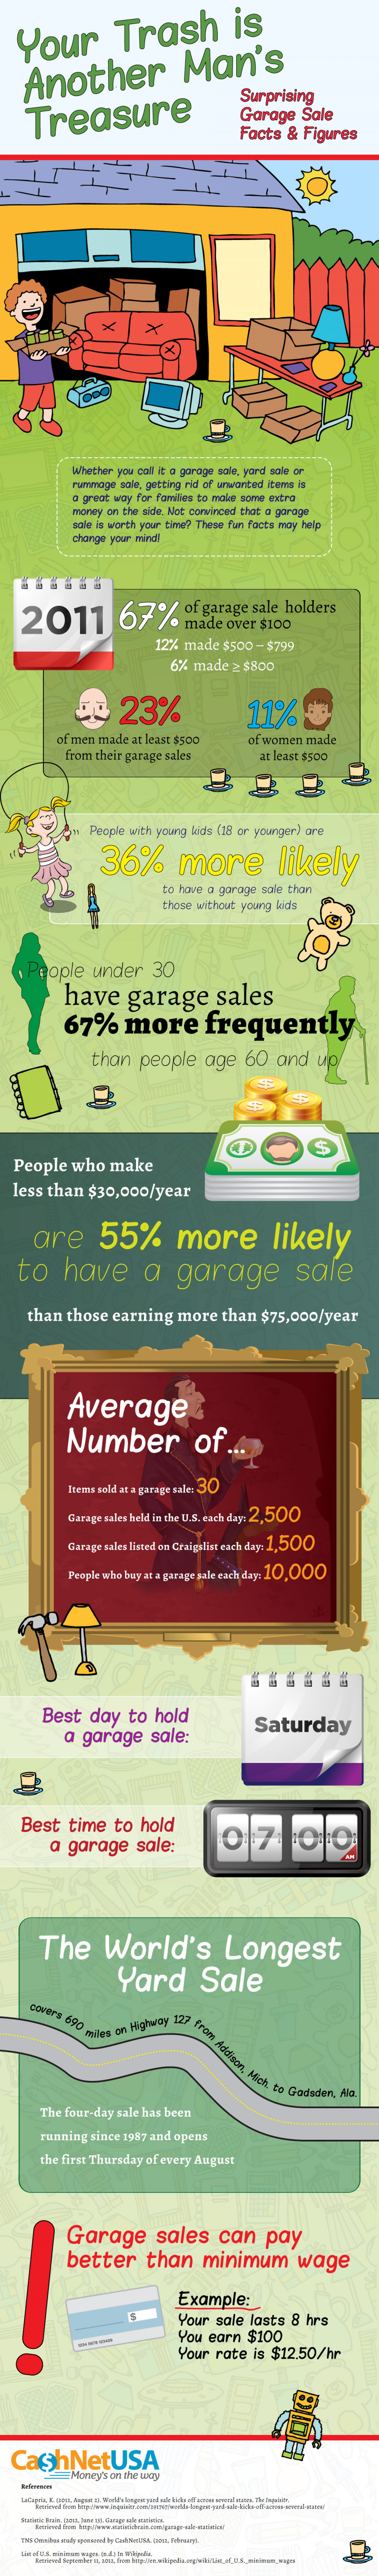 Are Garage Sales a Hidden Gold Mine? Infographic